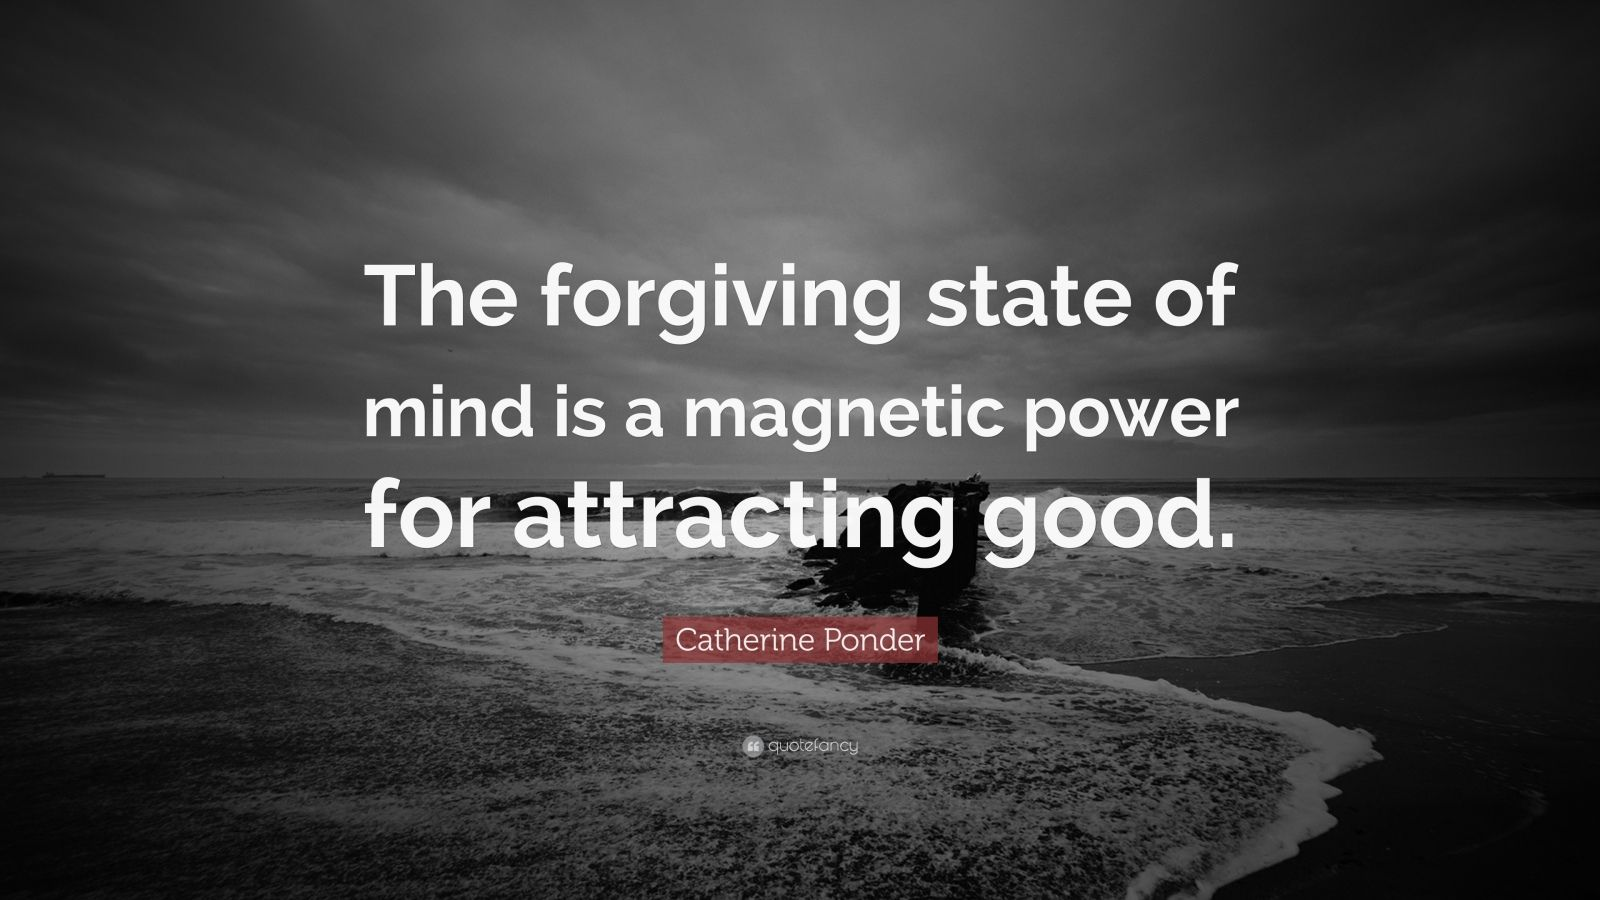 Zen Quote Wallpapers Catherine Ponder Quote The Forgiving State Of Mind Is A